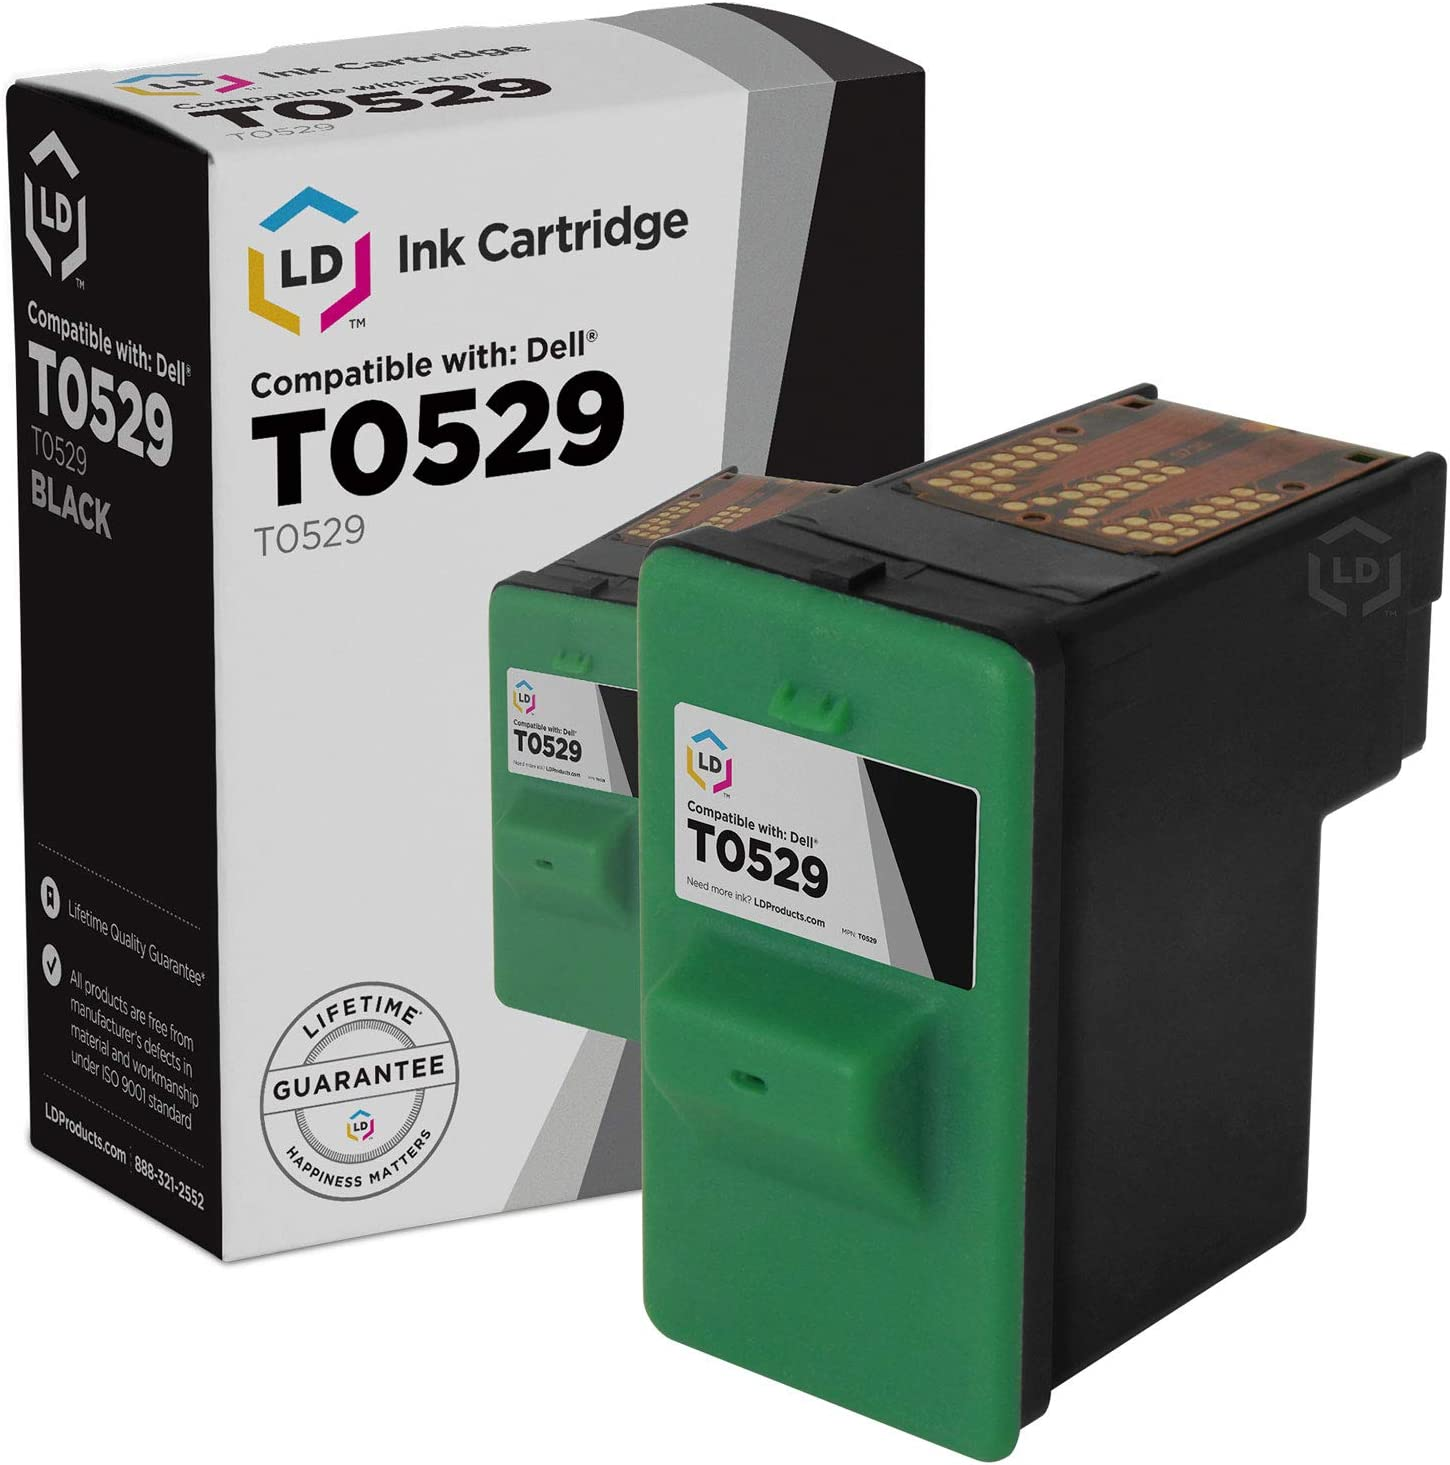 LD Remanufactured Ink Cartridge Replacement for Dell T0529 Series 1 (Black)